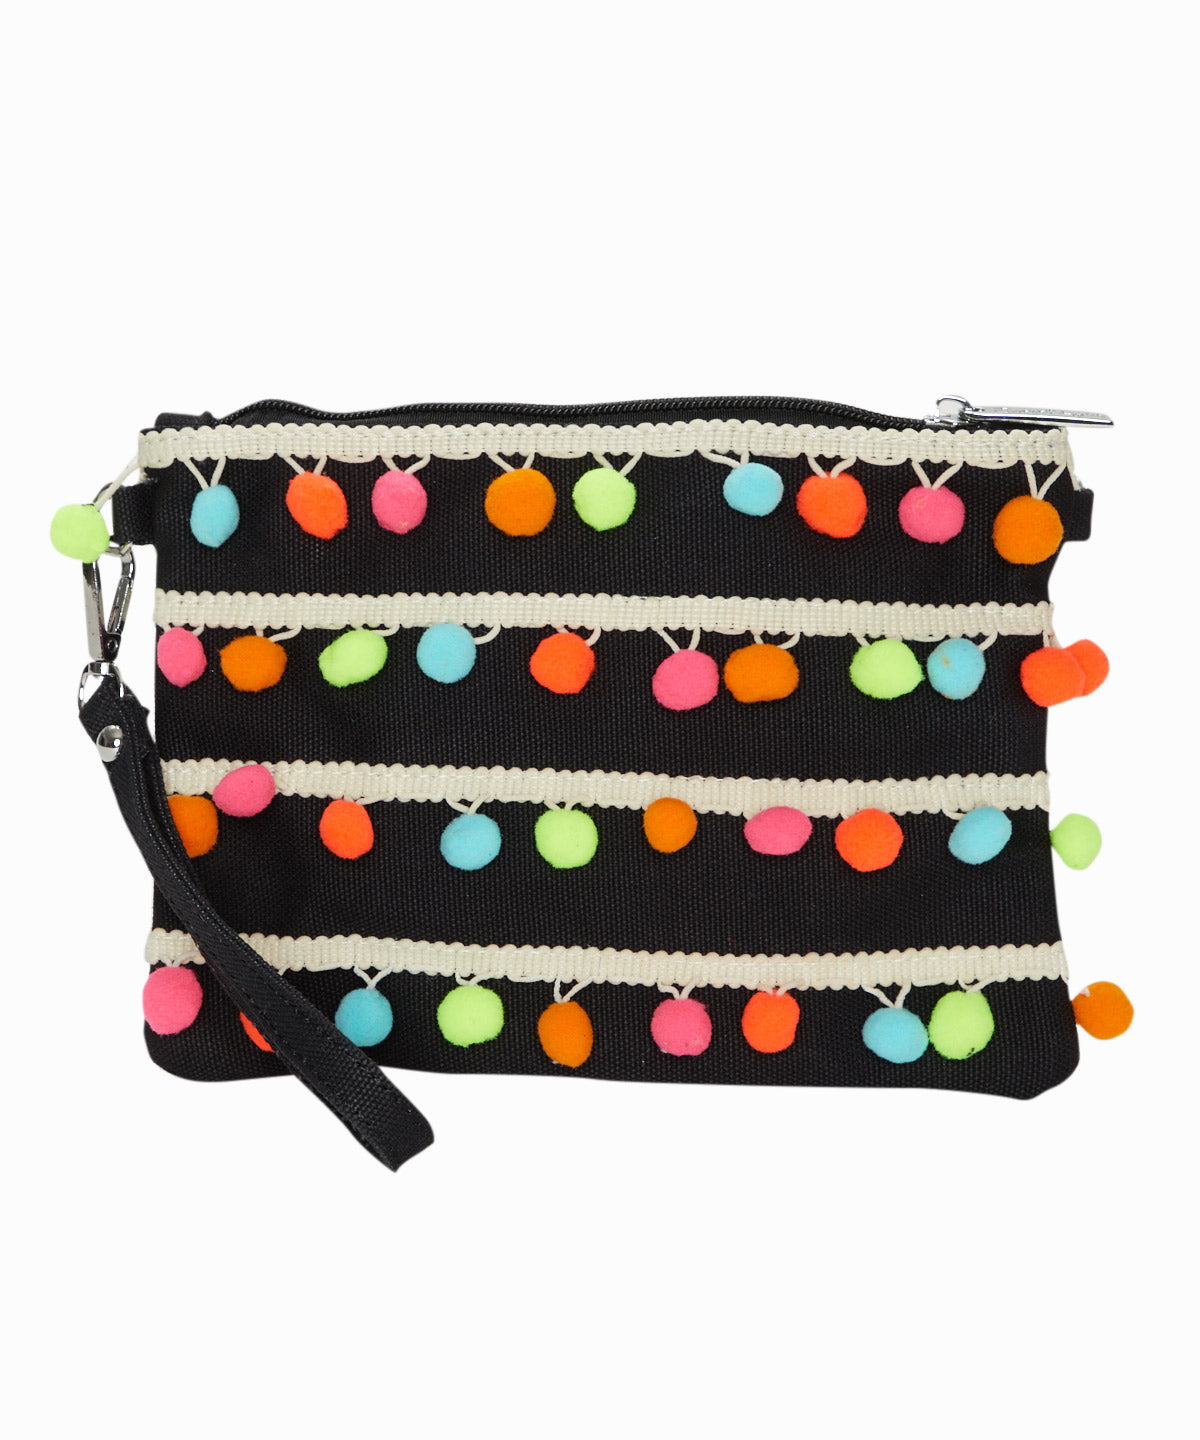 Pom Pom Black Wristlet Bag